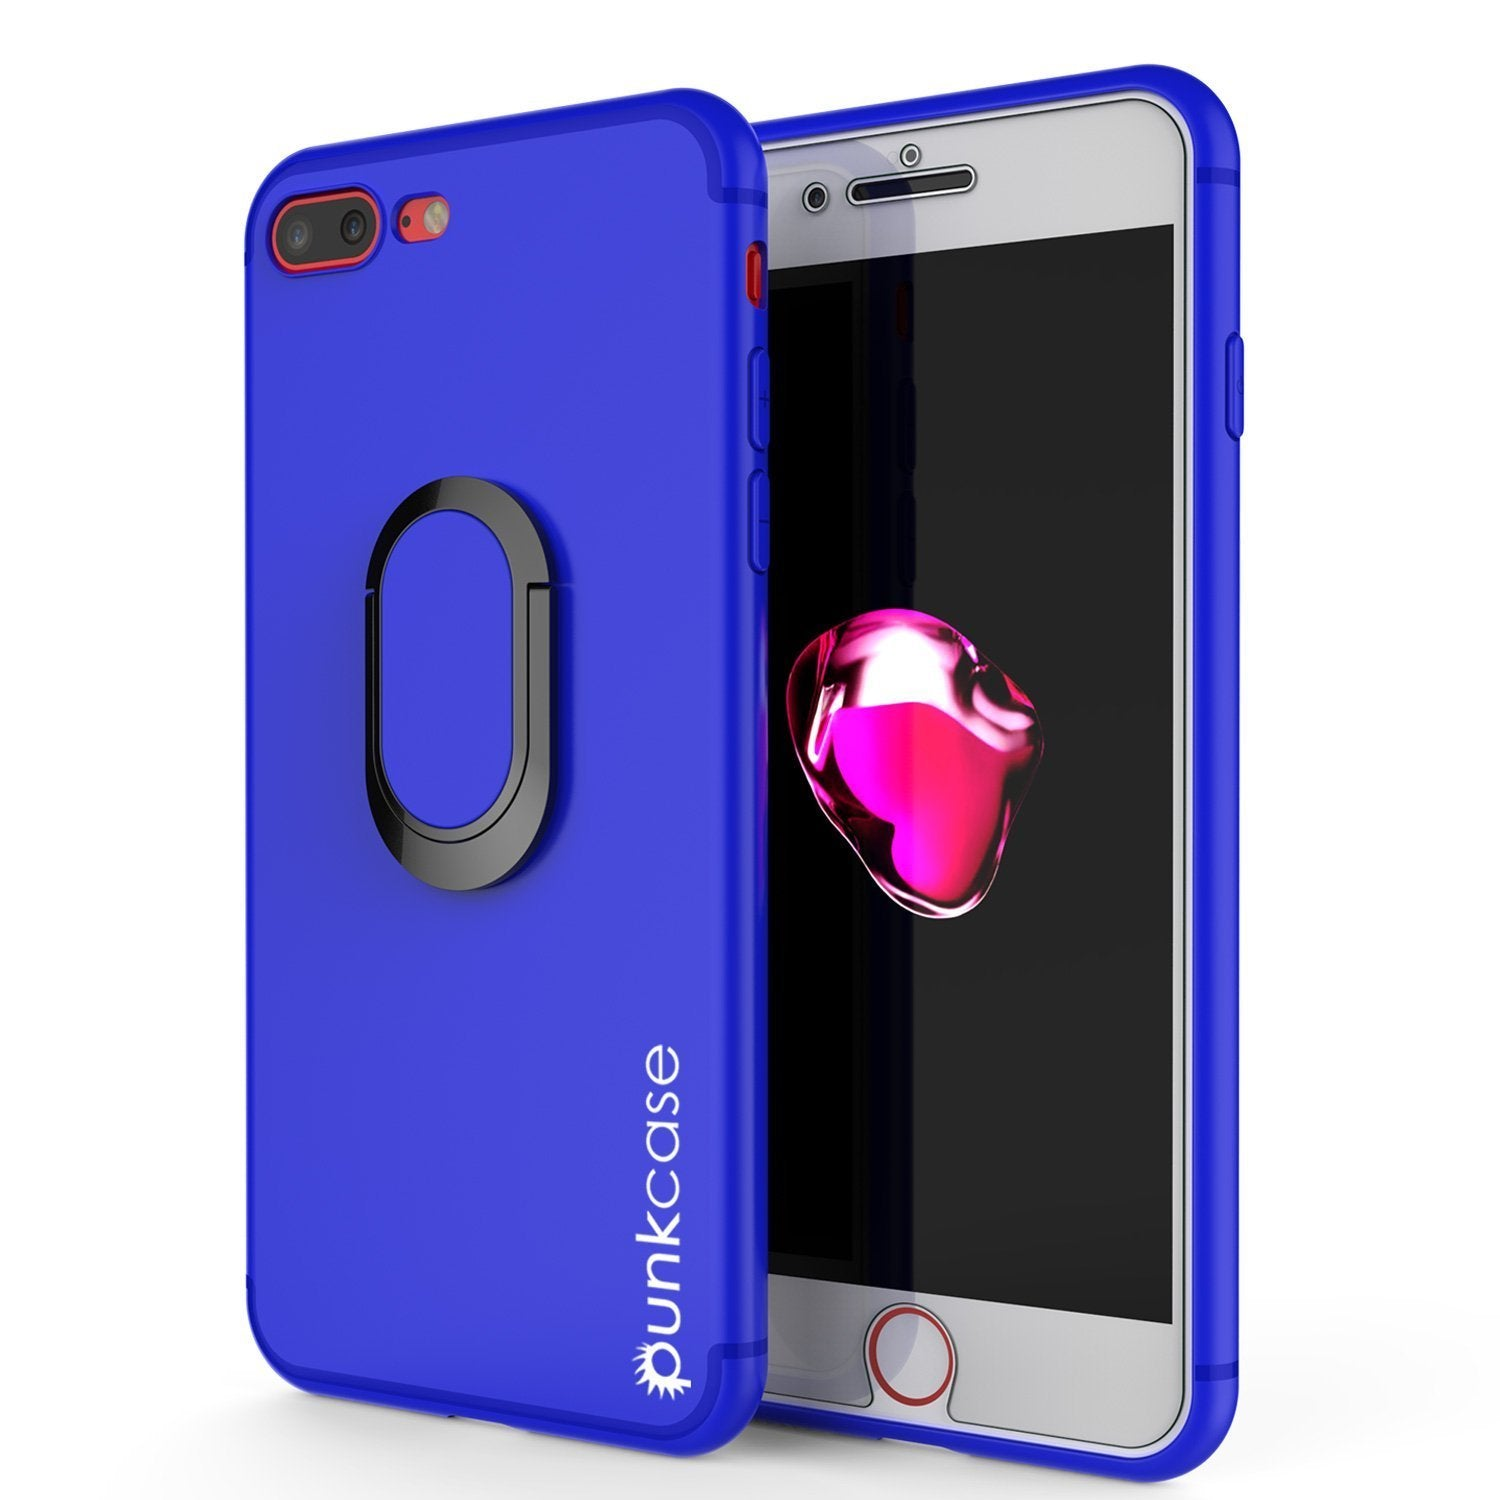 huge discount dce10 9ba56 iPhone 8 PLUS Case, Punkcase Magnetix Protective TPU Cover W ...